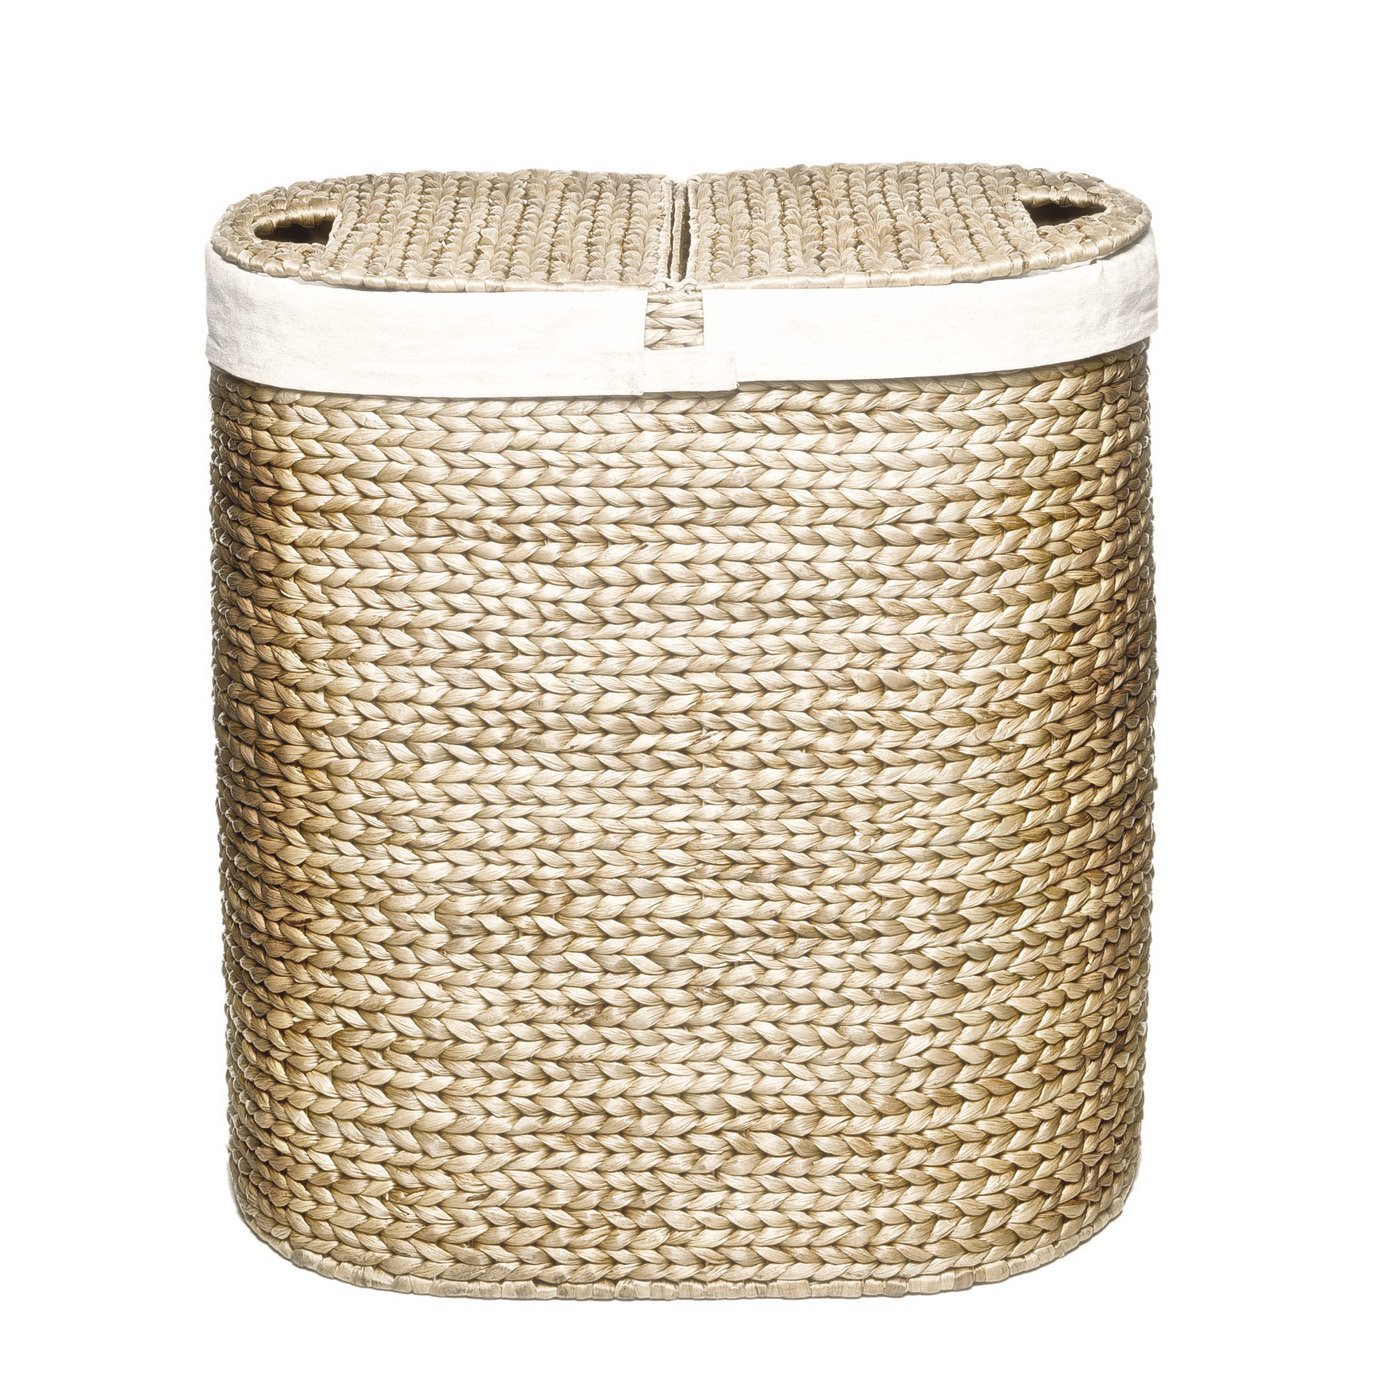 Decorative Laundry Items 14 Best Wicker Hampers In 2018 Decorative Woven And Wicker